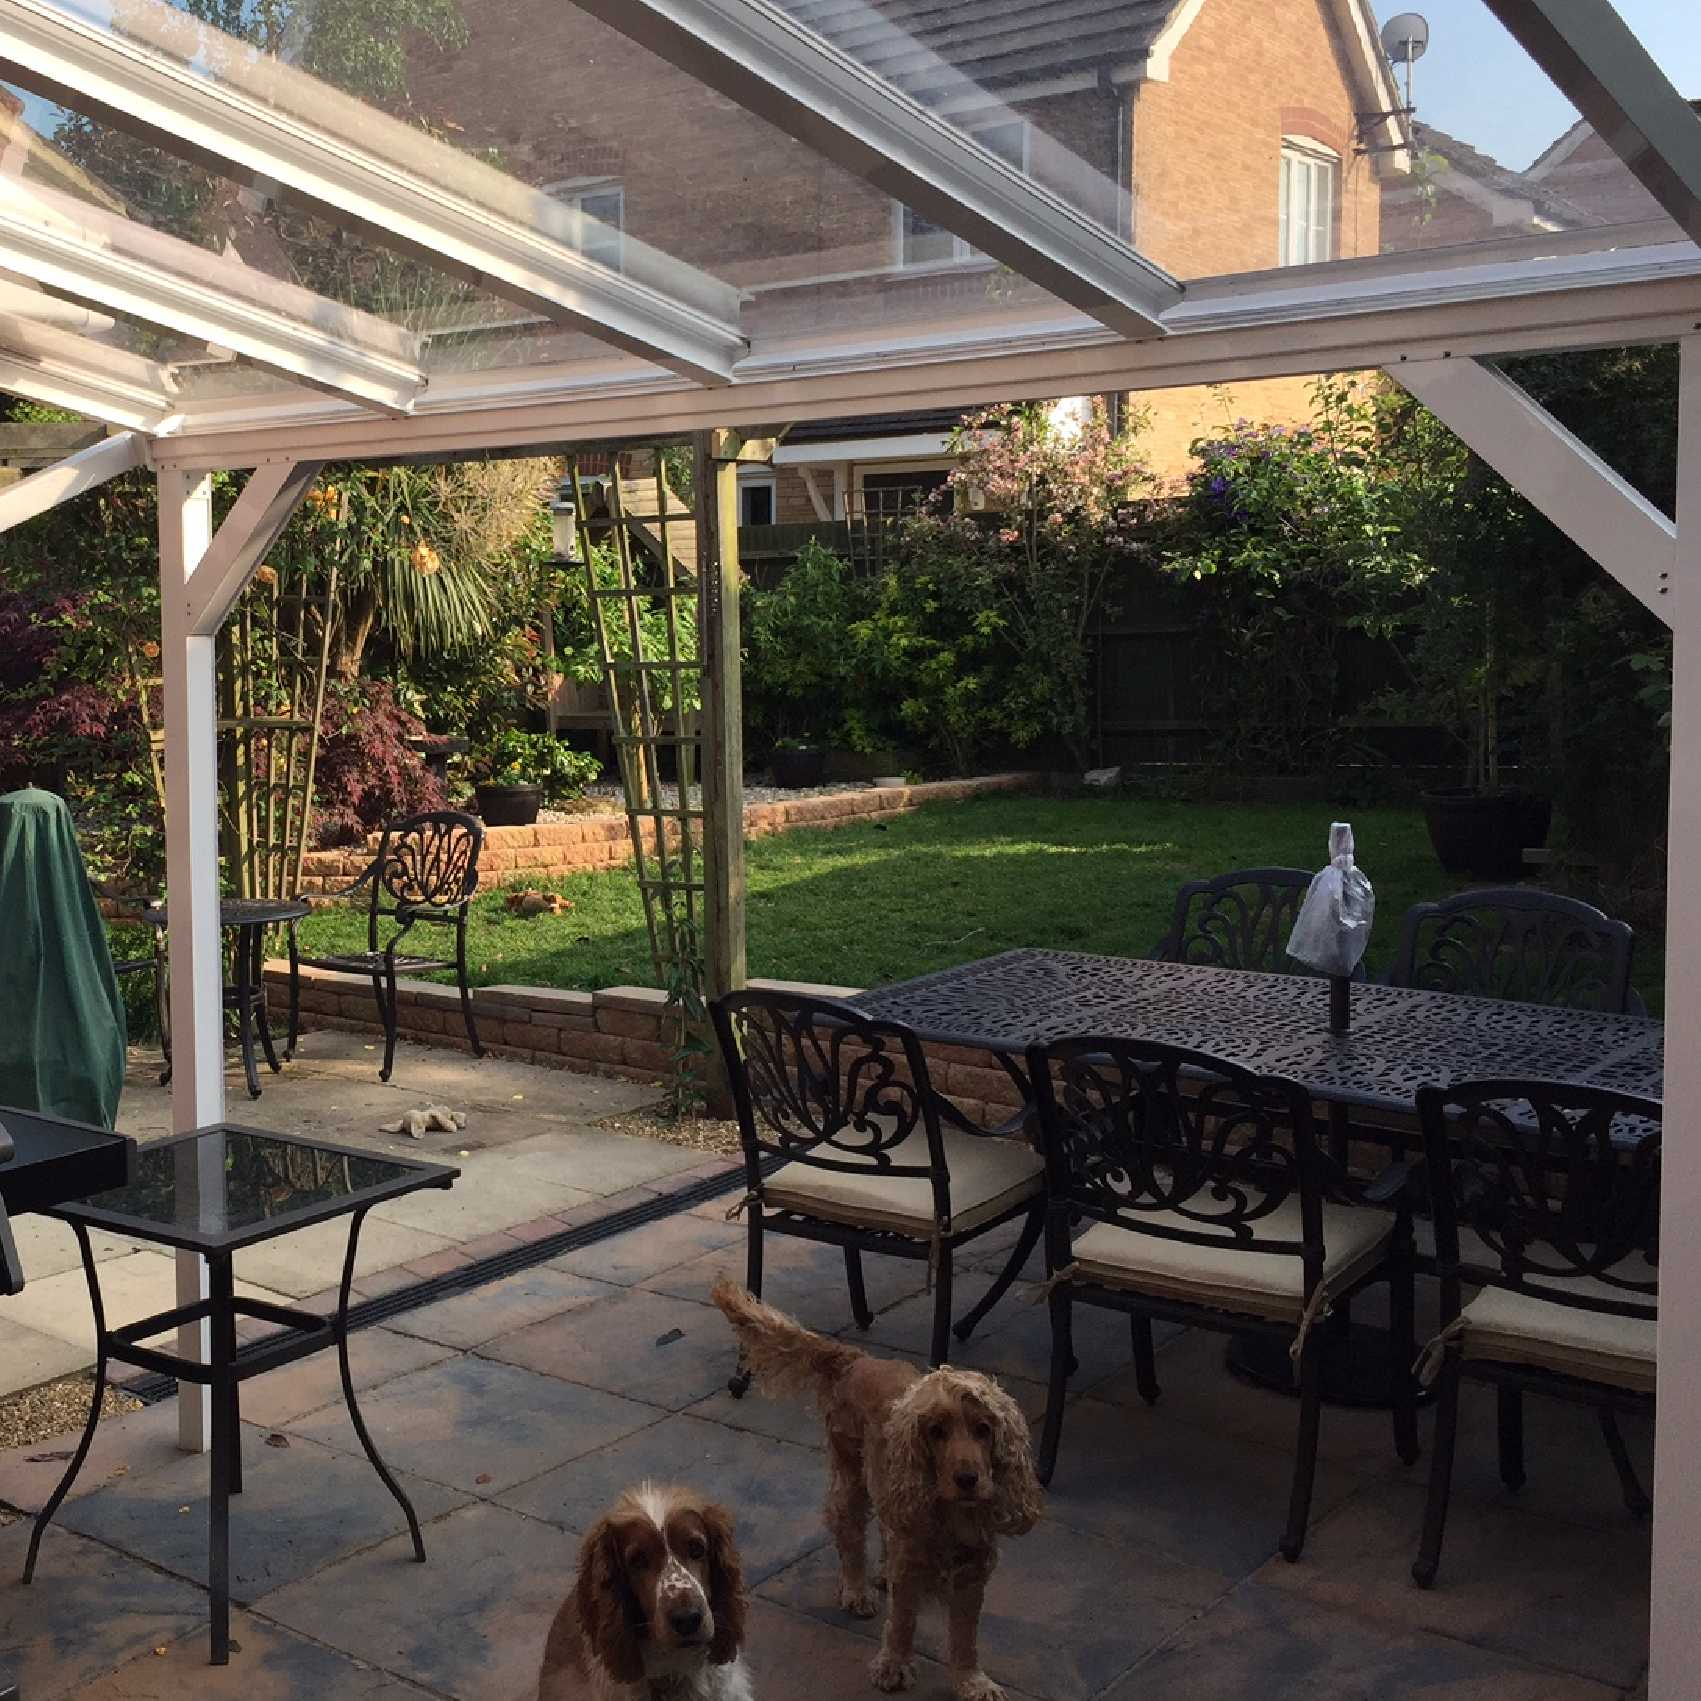 Affordable Omega Smart Lean-To Canopy with 6mm Glass Clear Plate Polycarbonate Glazing - 9.1m (W) x 2.5m (P), (5) Supporting Posts